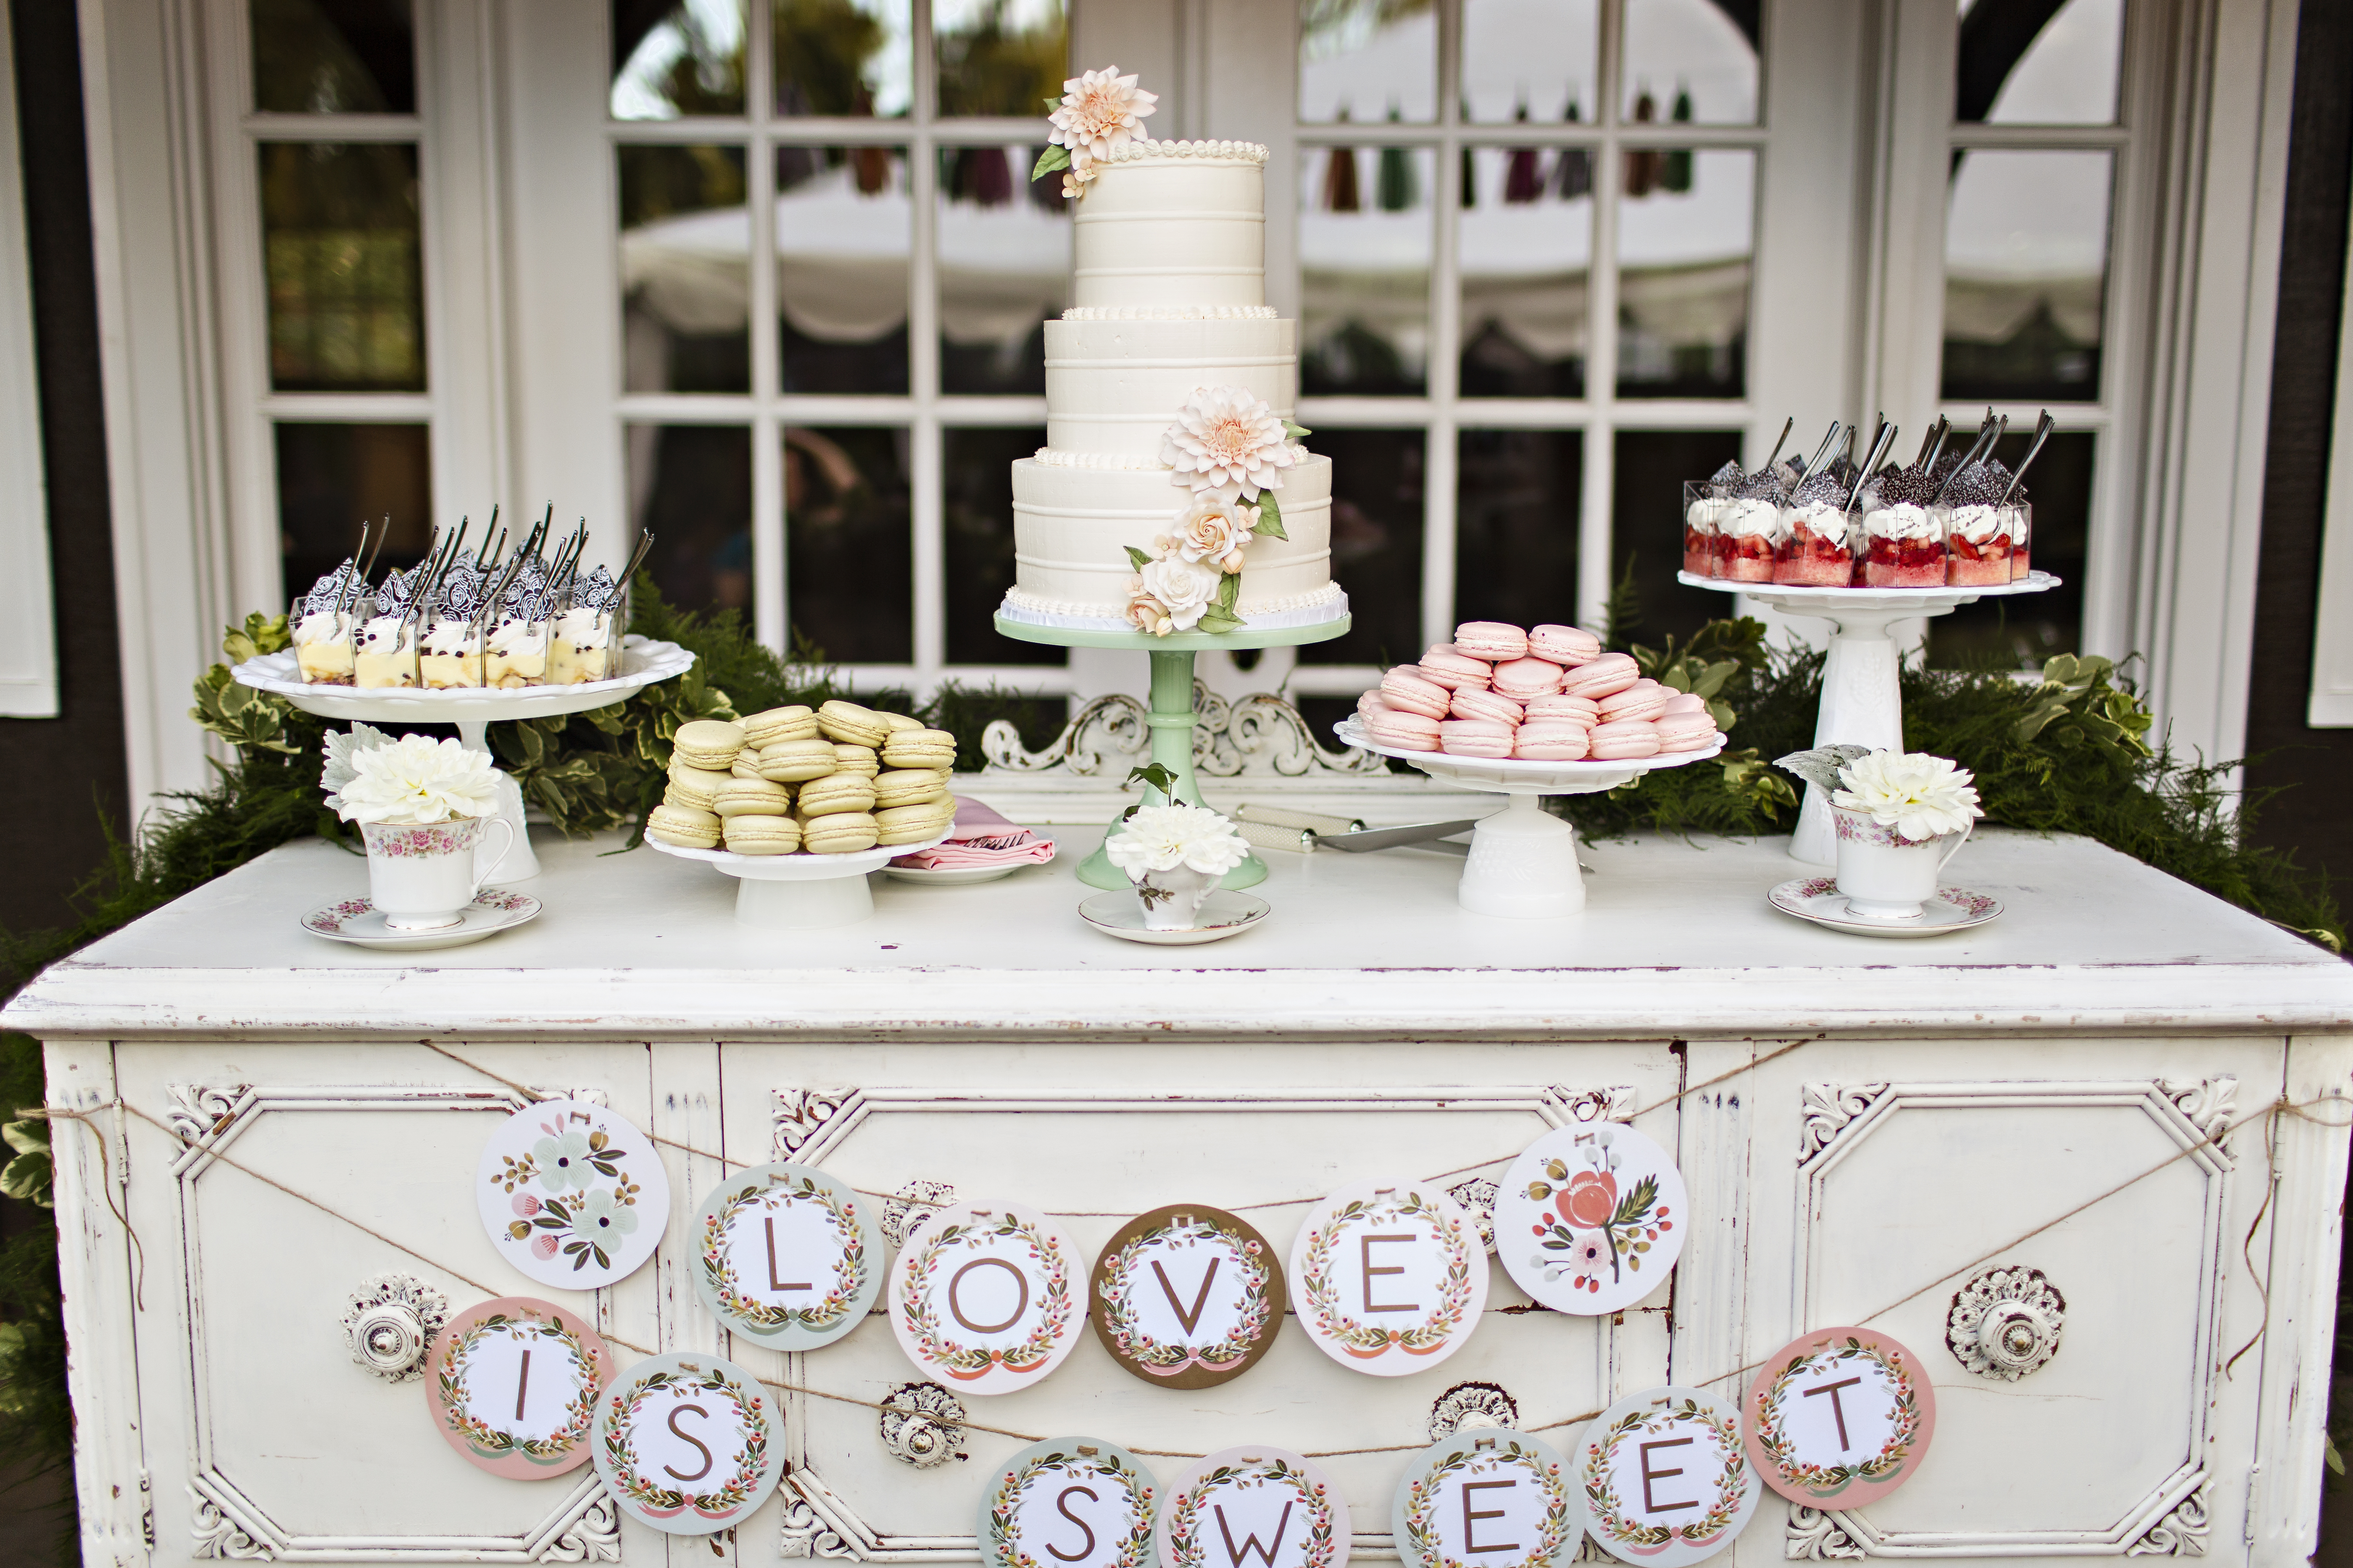 Robinswood House Wedding in Bellevue | Rustic dessert table with whimsical decor | Perfectly Posh Events, Seattle Wedding Planner | Courtney Bowlden Photography | Midori Bakery